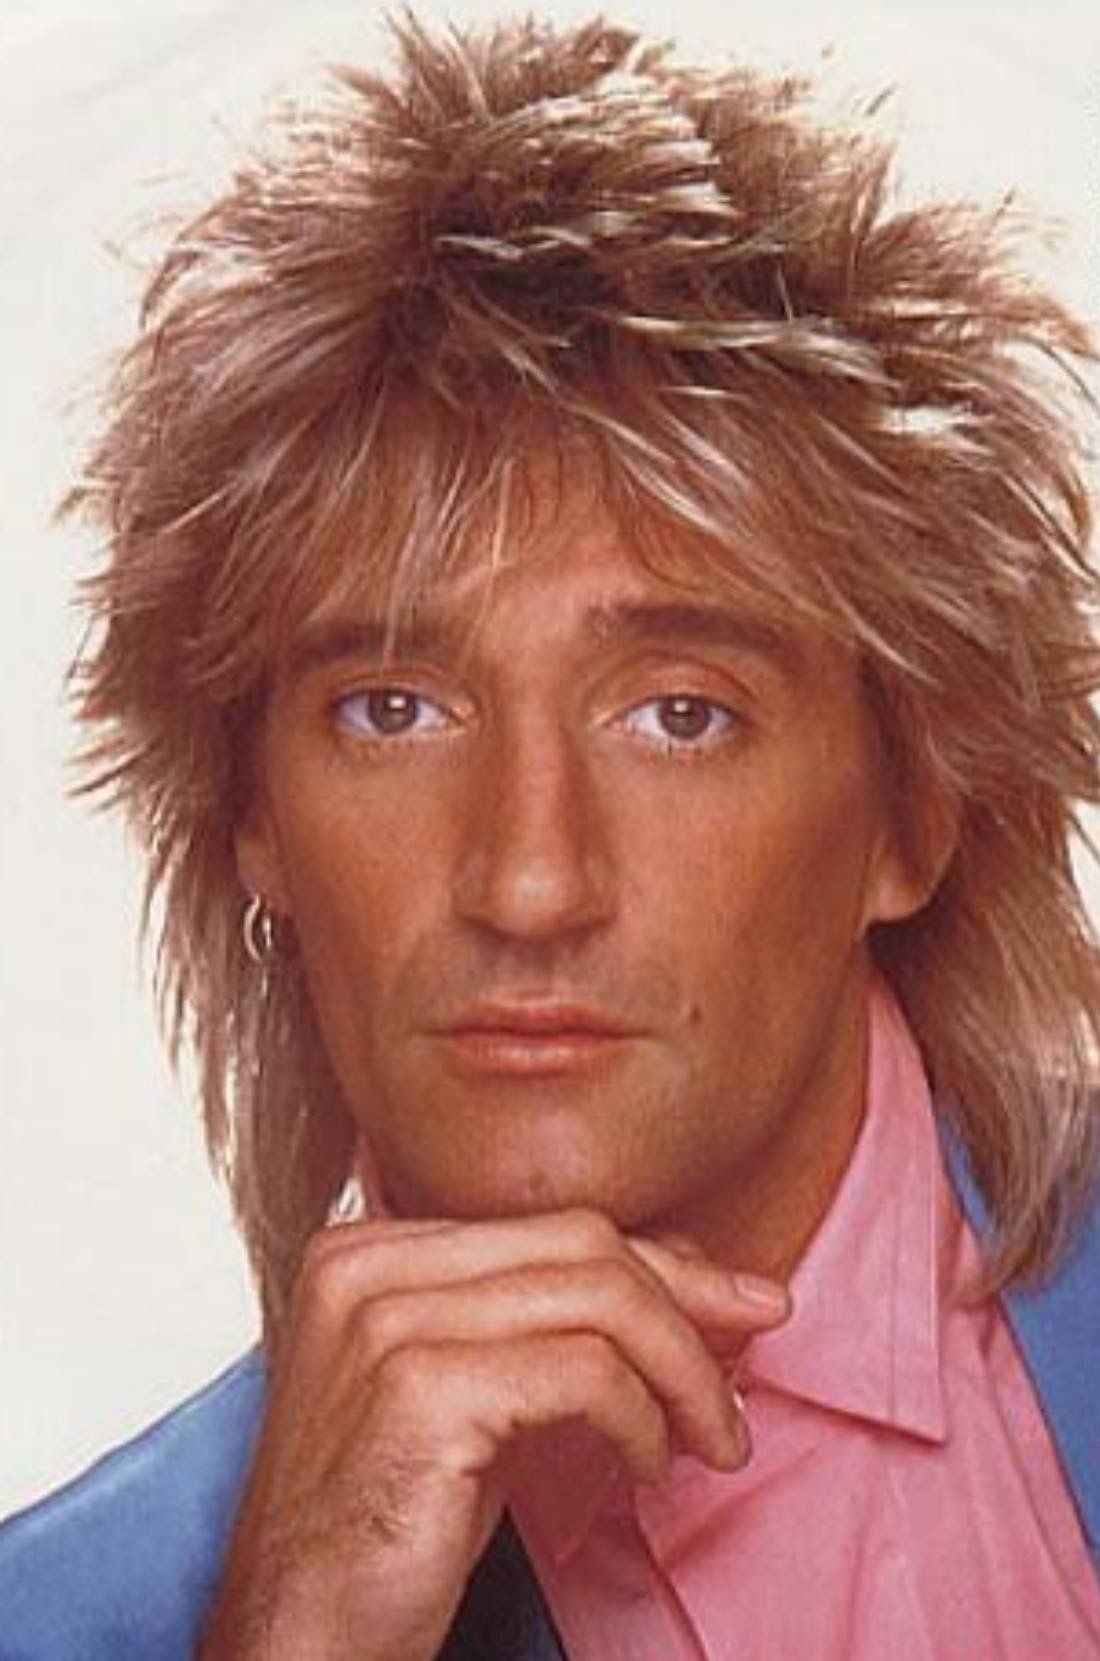 Rod Stewart Just Look How Young He Is All That Hair Rod Stewart Rod Stewart Forever Young Stewart